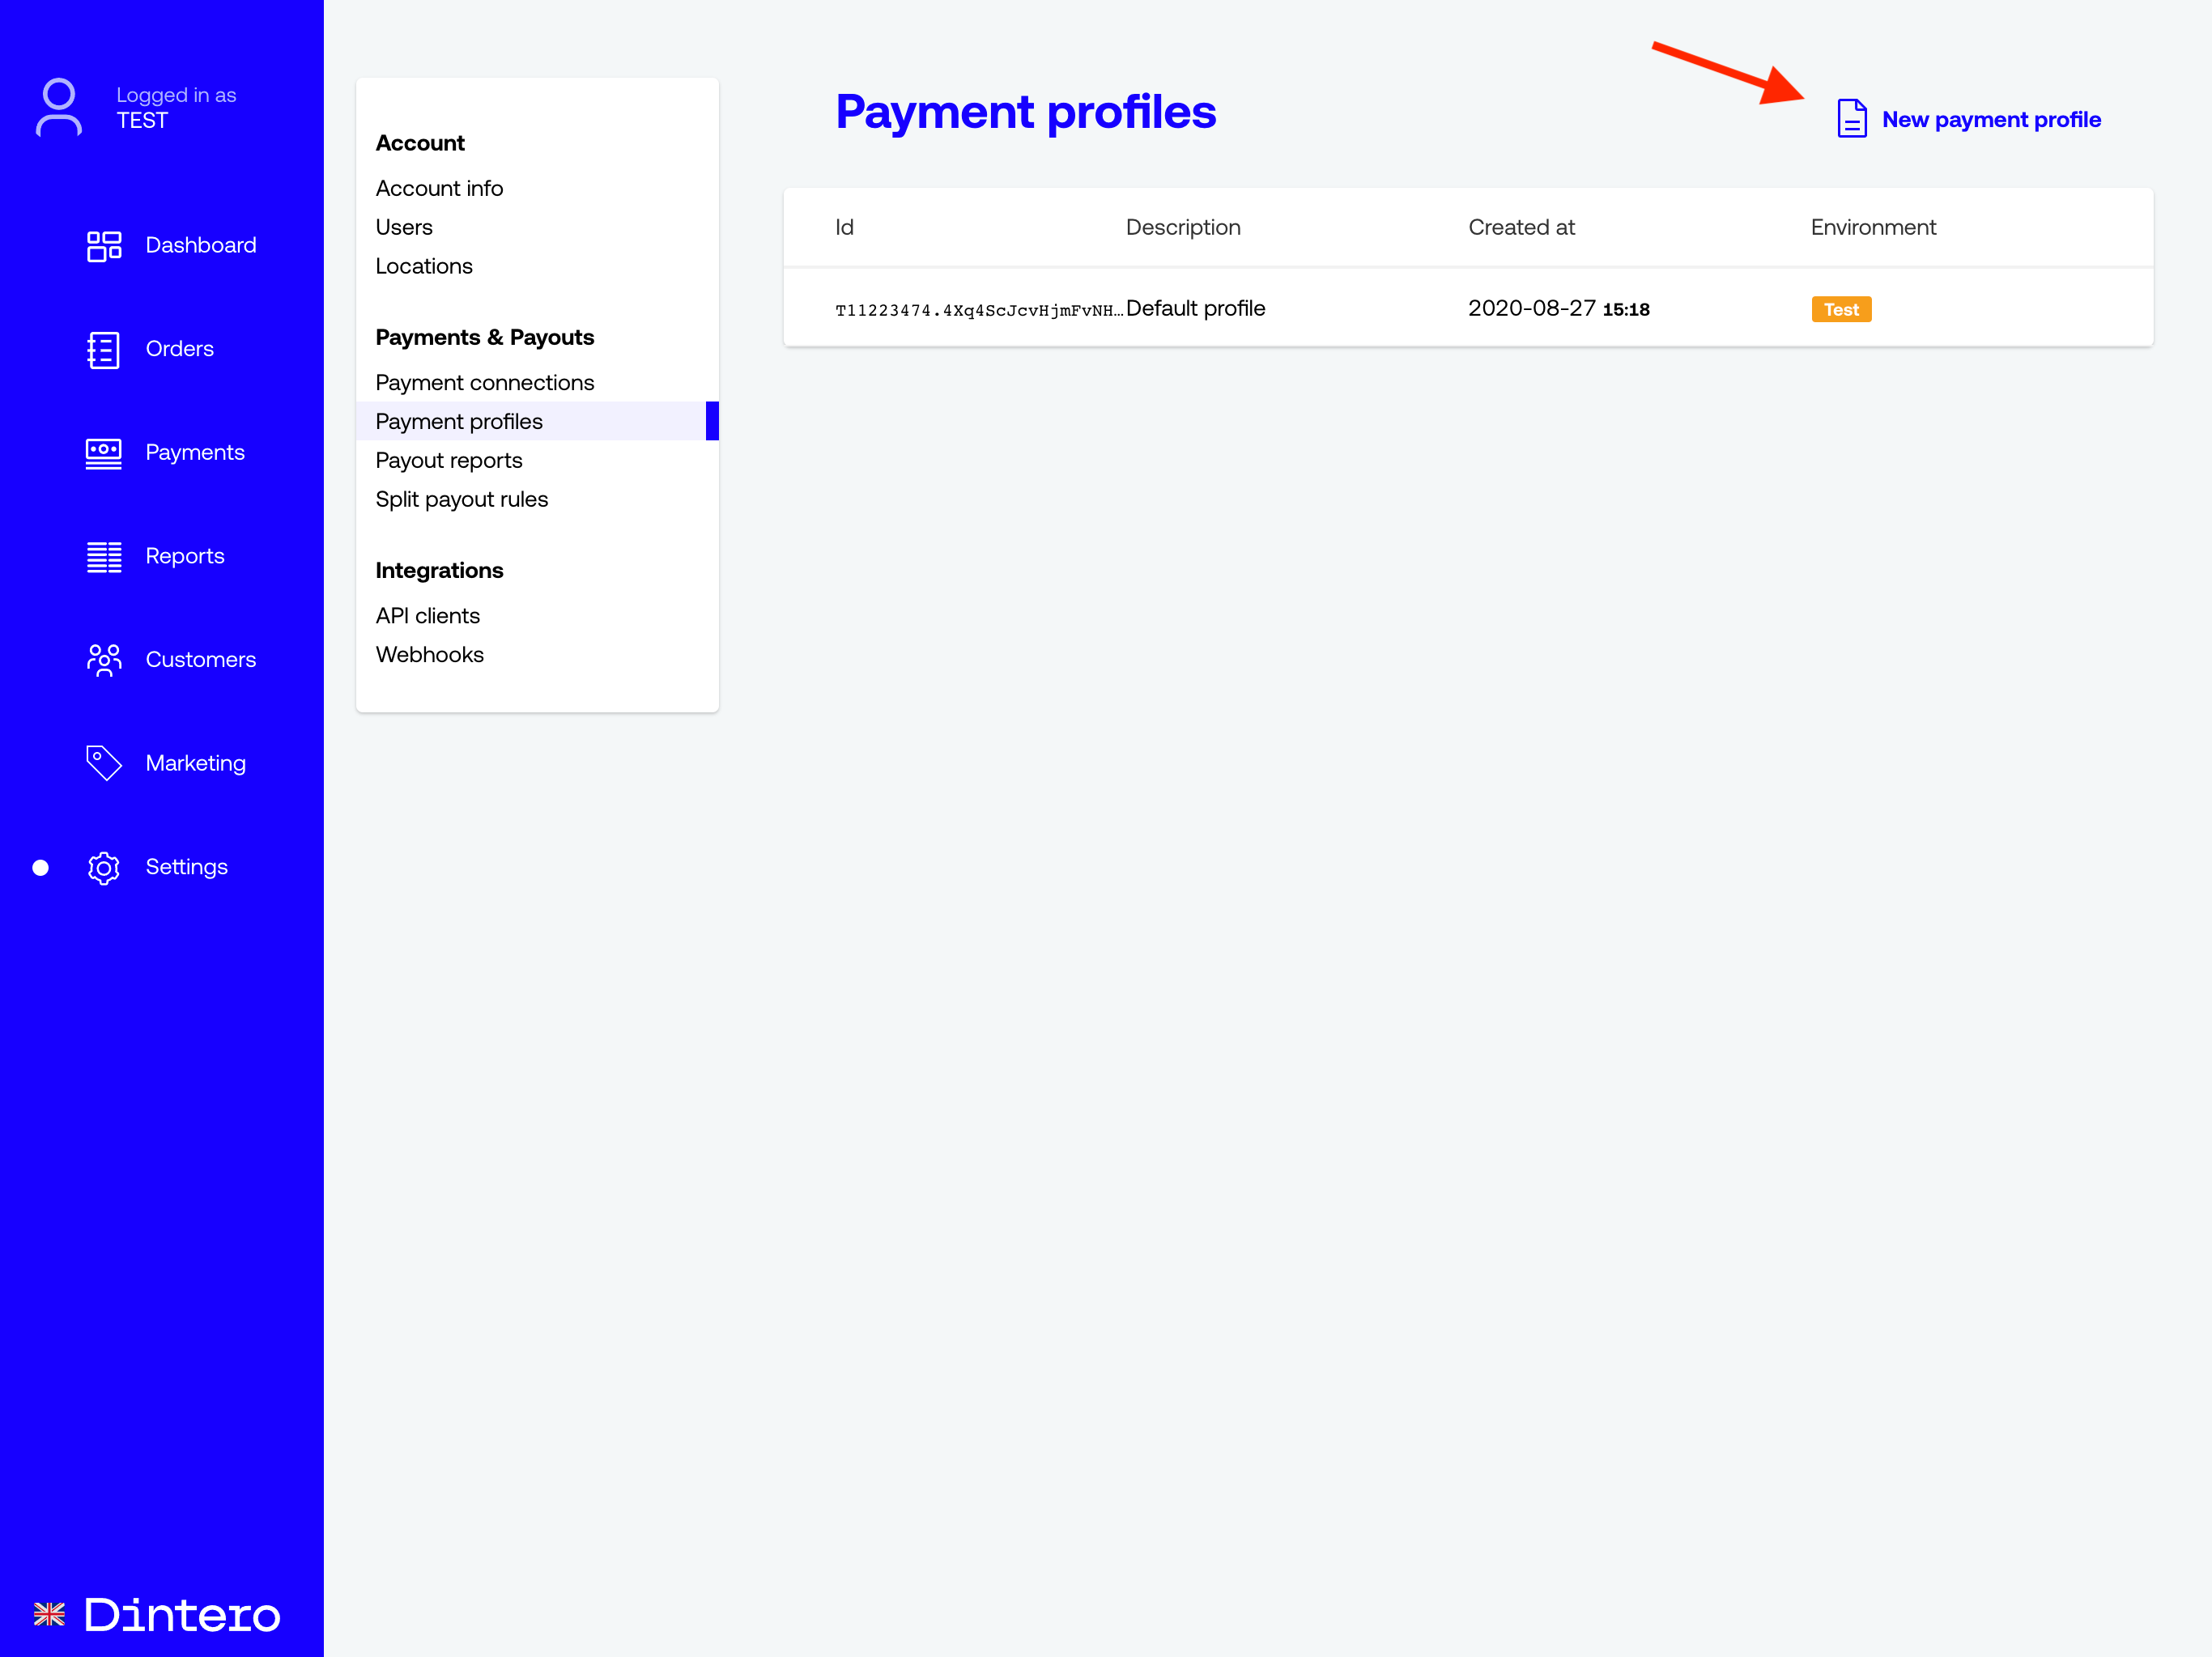 new payment profile